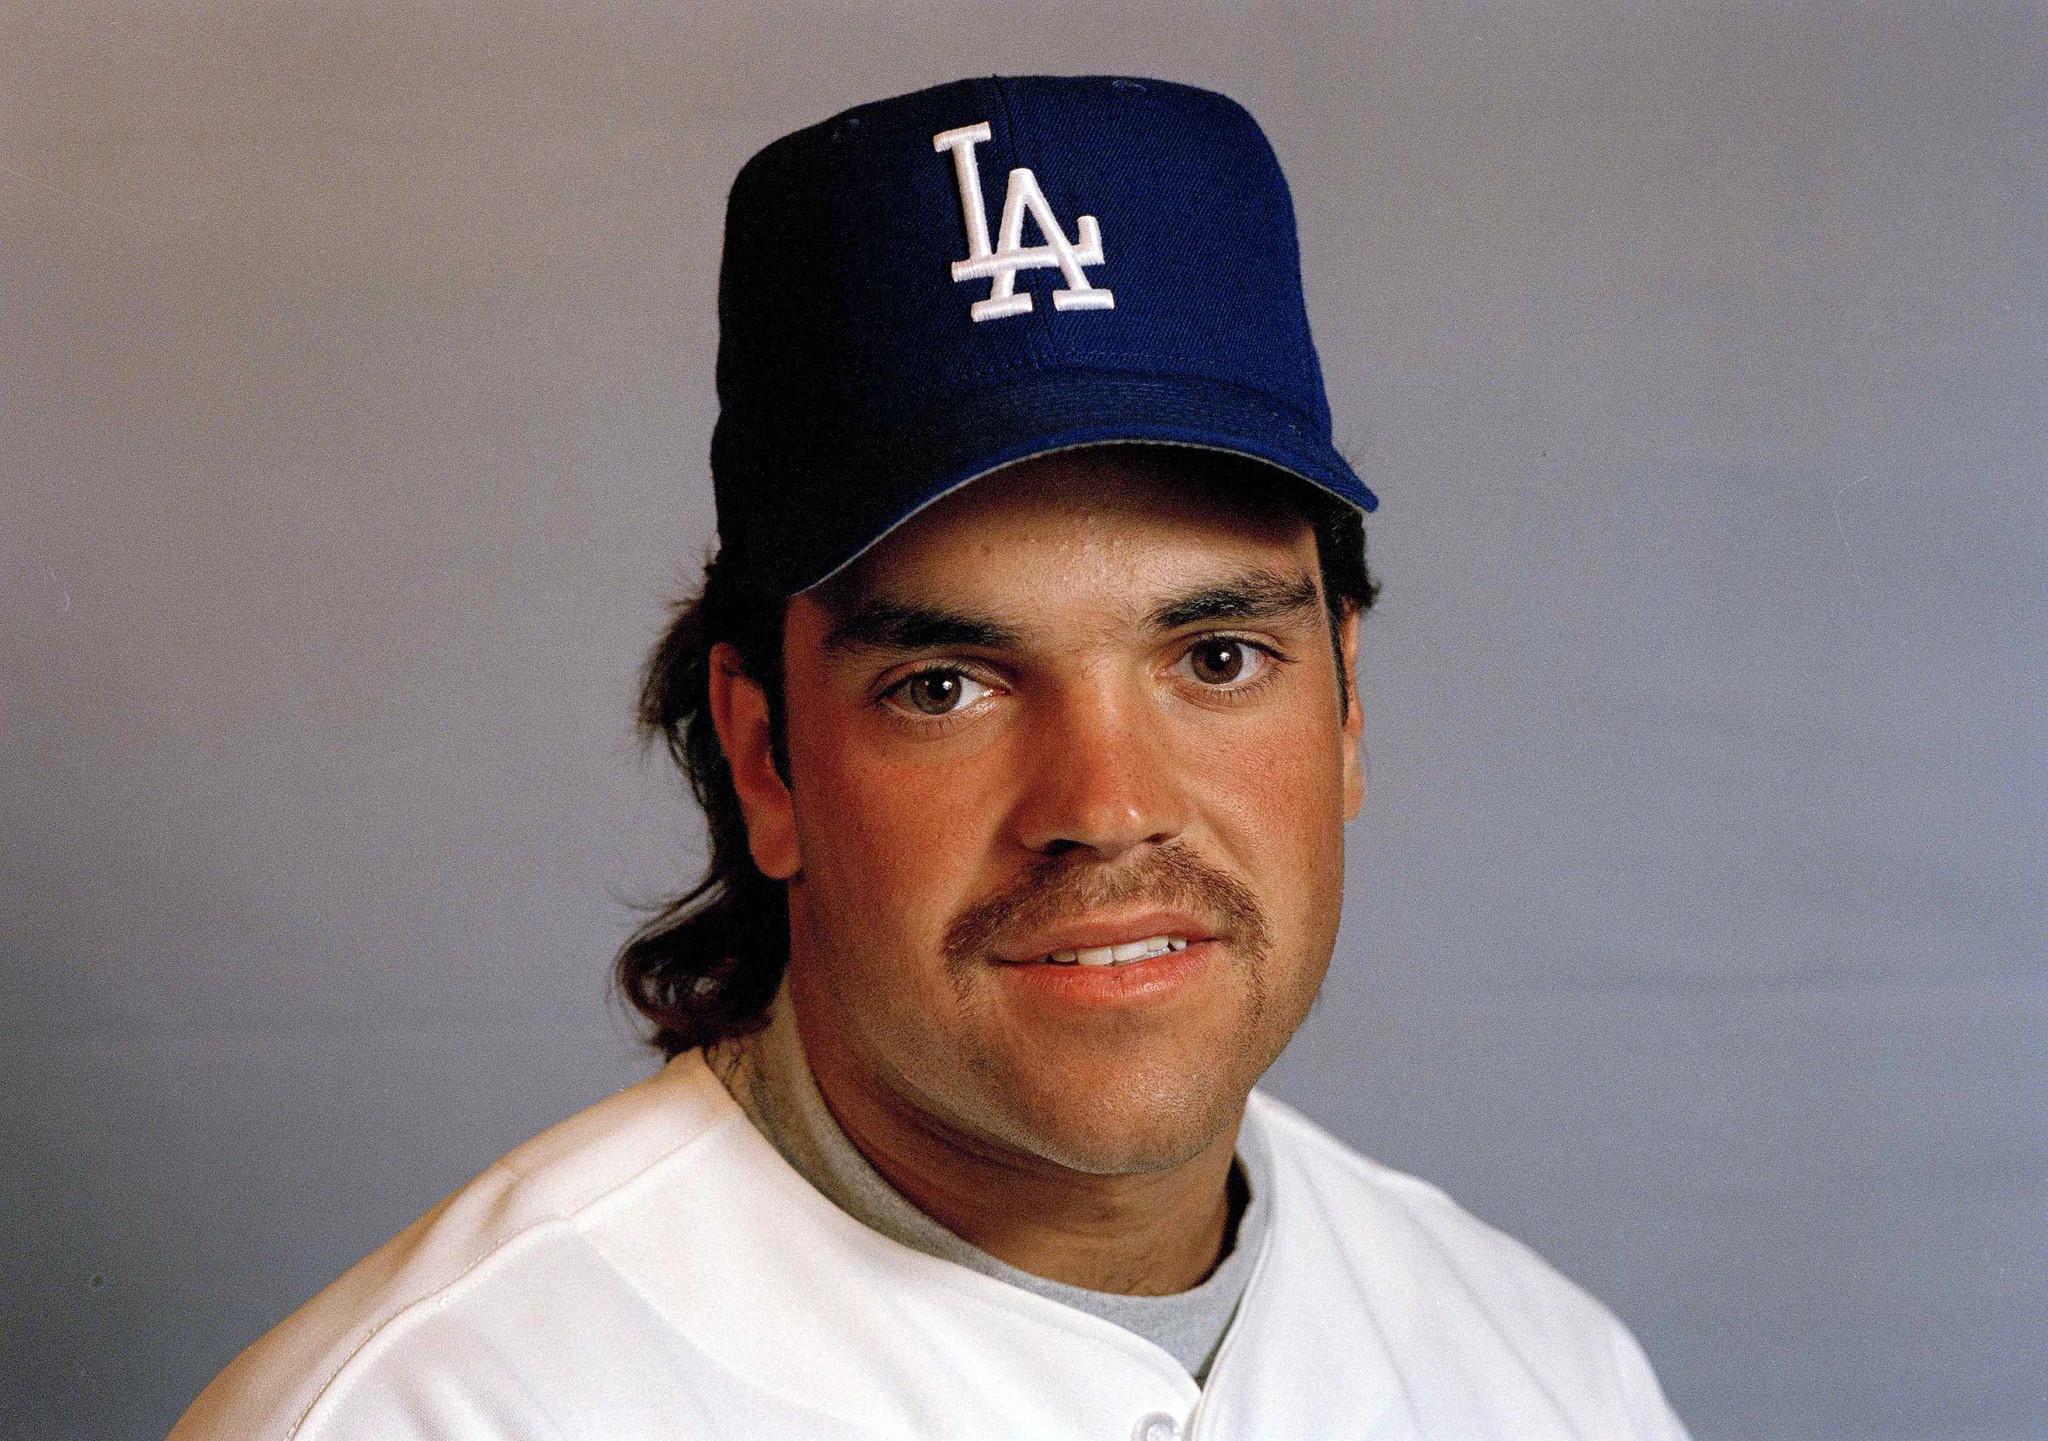 Mike Piazza has made it hard for Dodgers fans to share his happiness - LA Times